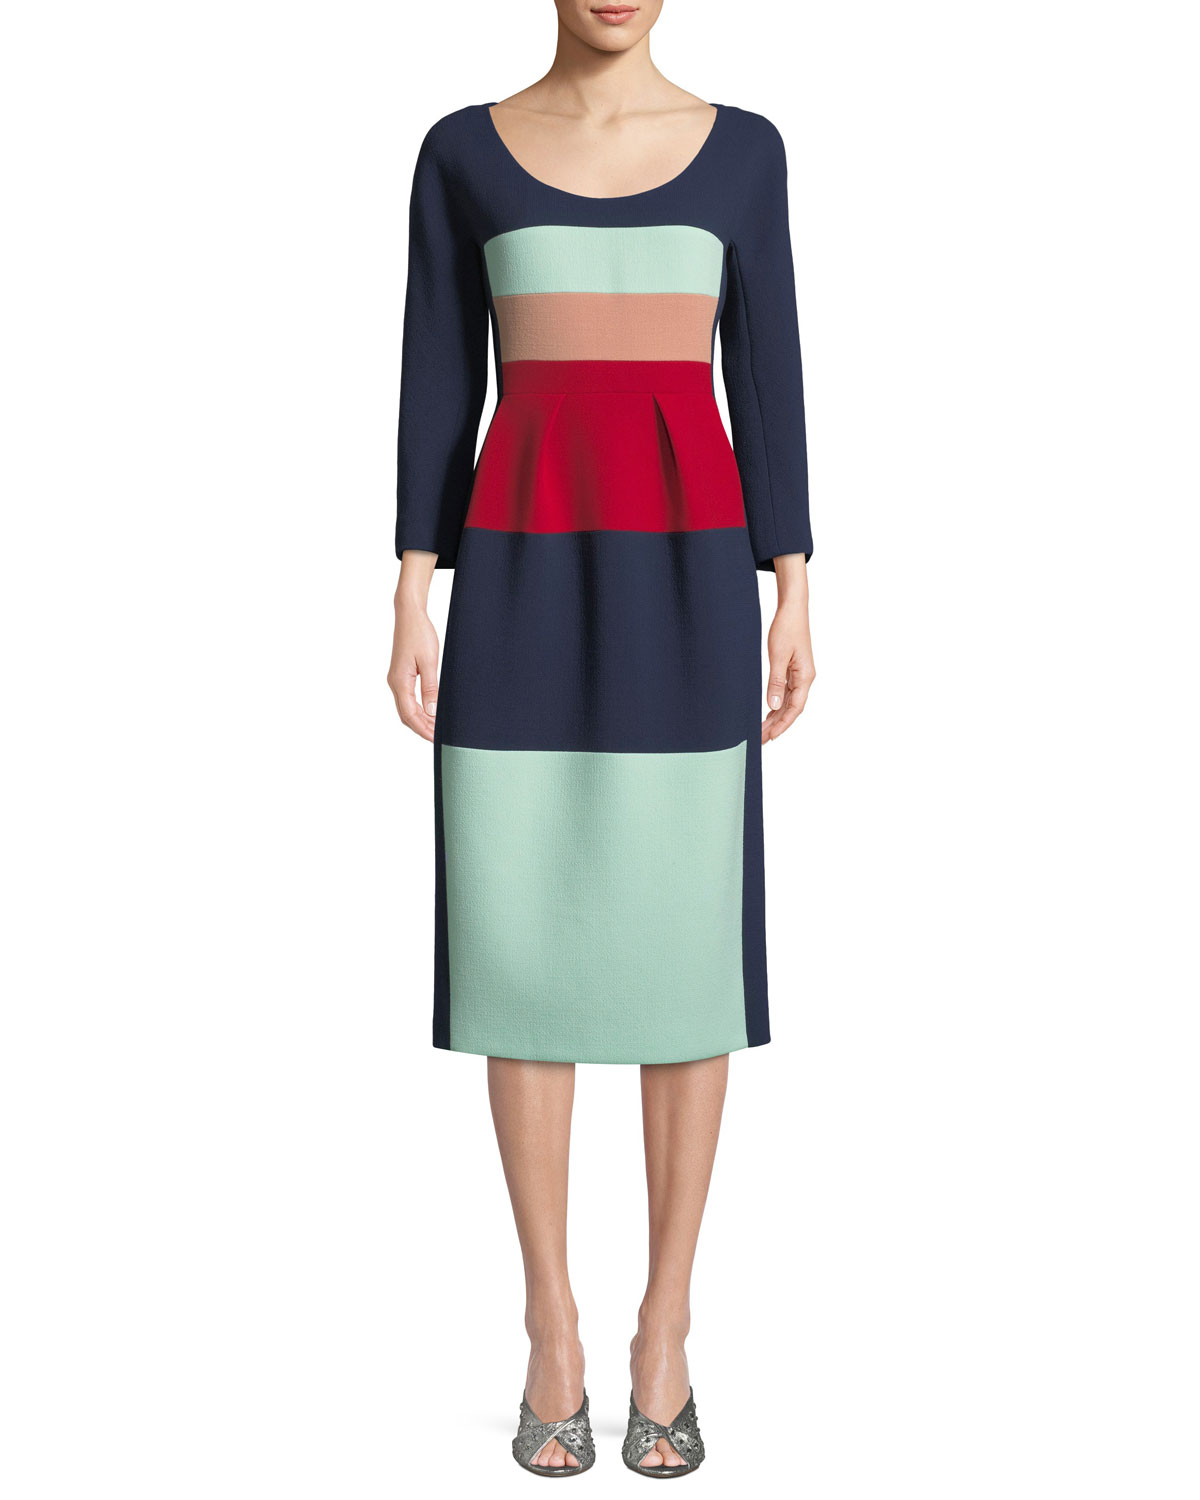 Scoop Neck Pencil Dress With Bracelet Sleeves Delpozo Gg01Gm0Hk